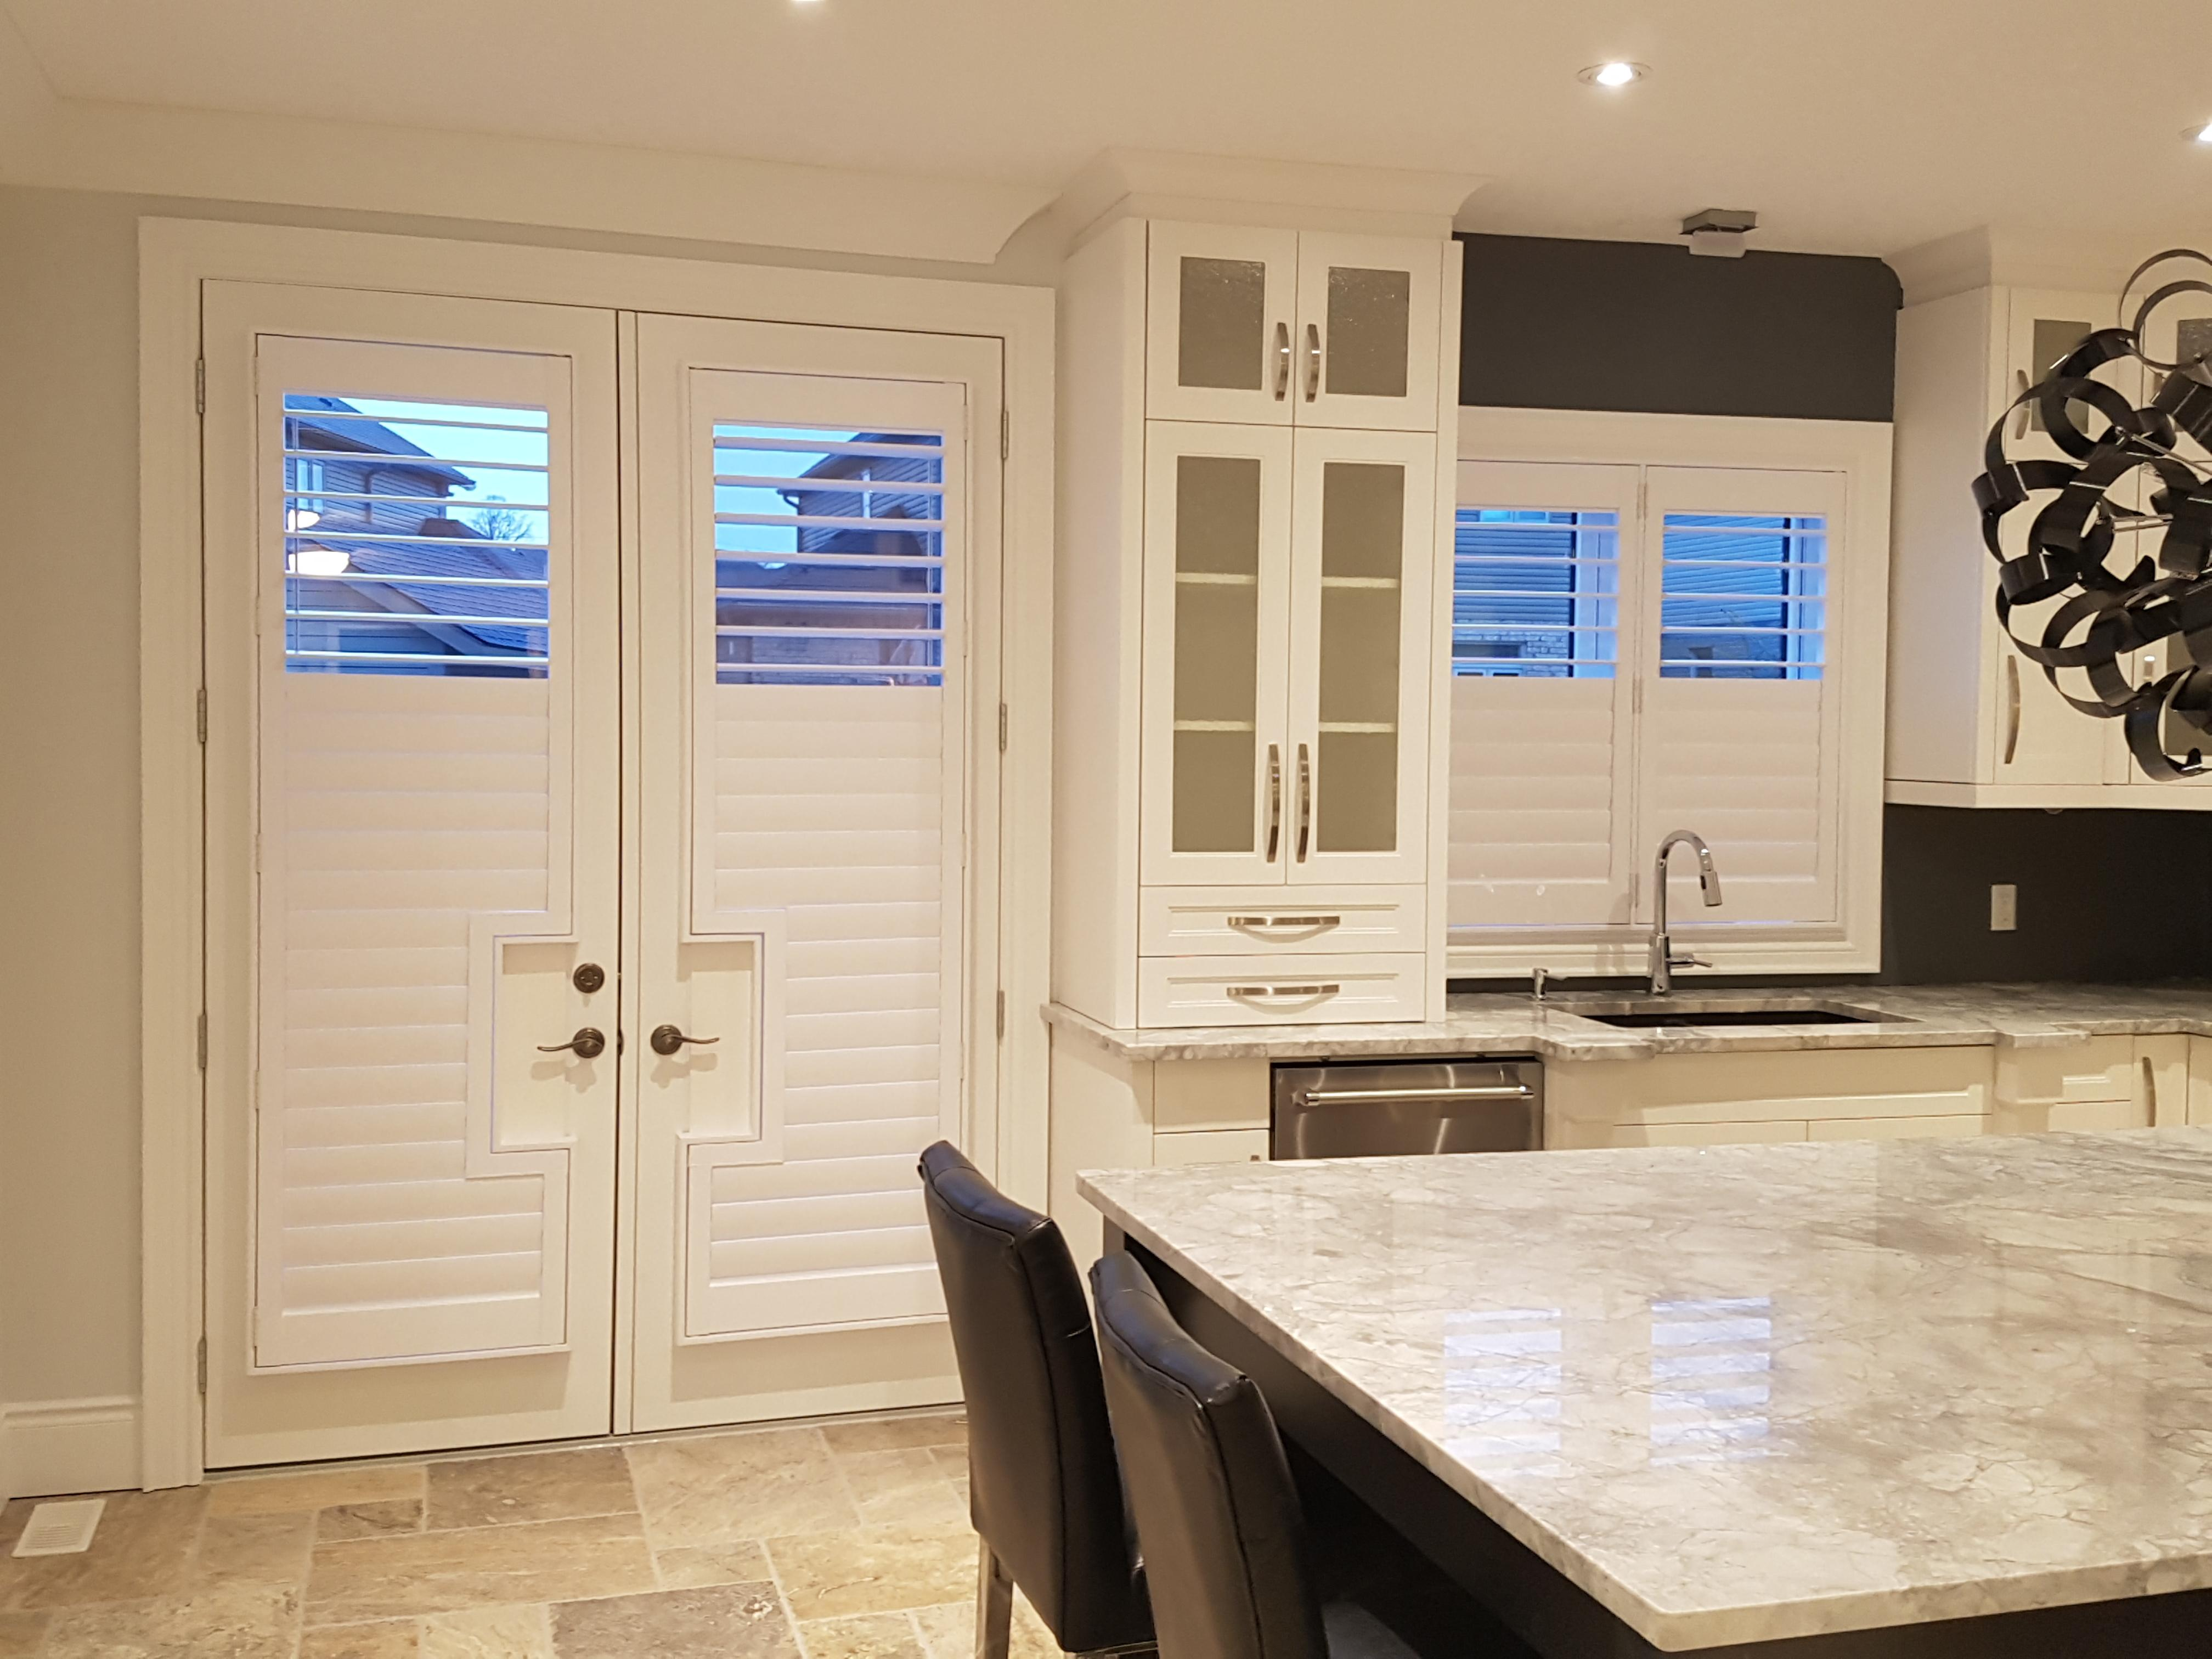 Budget Blinds à Waterloo: These white California Shutters blend into this white kitchen seamlessly. Notice how the shutters were custom manufactured to accommodate the door hardware. Also, the split tilt in the louvres lines up perfectly even though the shutters are different heights. This is the type of detail that our clients have come to appreciate and expect from Budget Blinds of Waterloo.